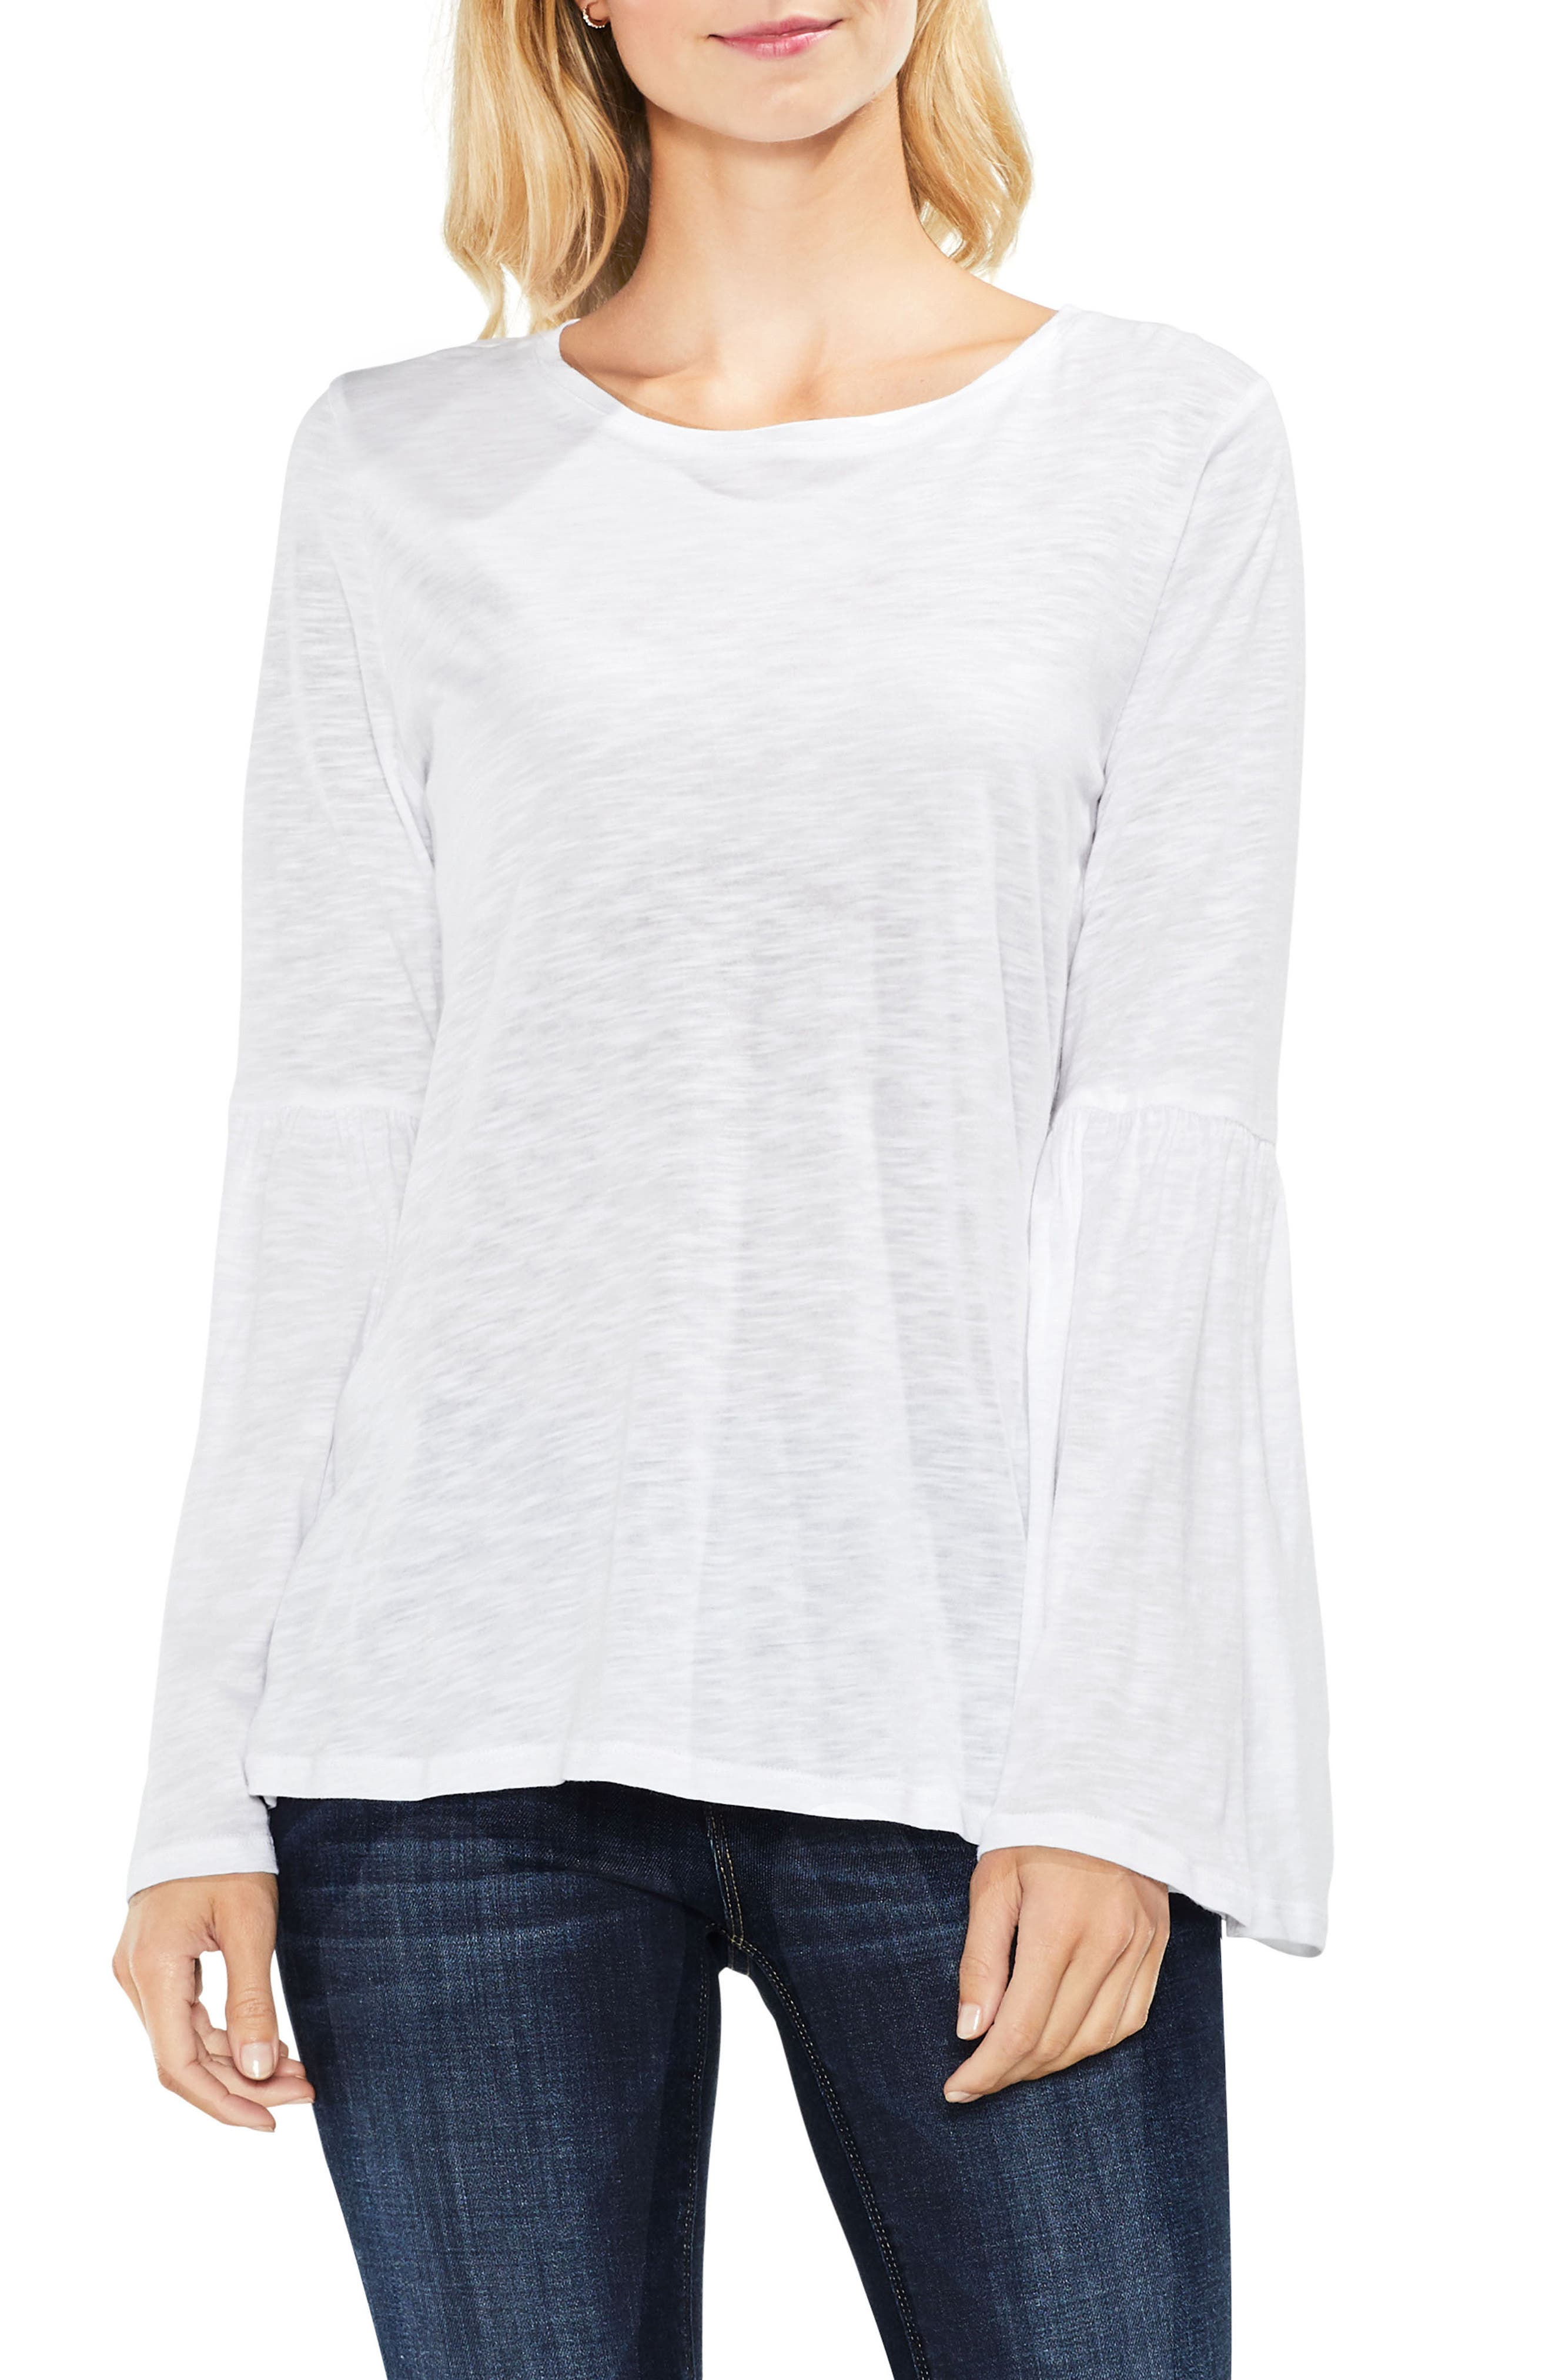 Main Image - Two by Vince Camuto Bell Sleeve Cotton & Modal Top